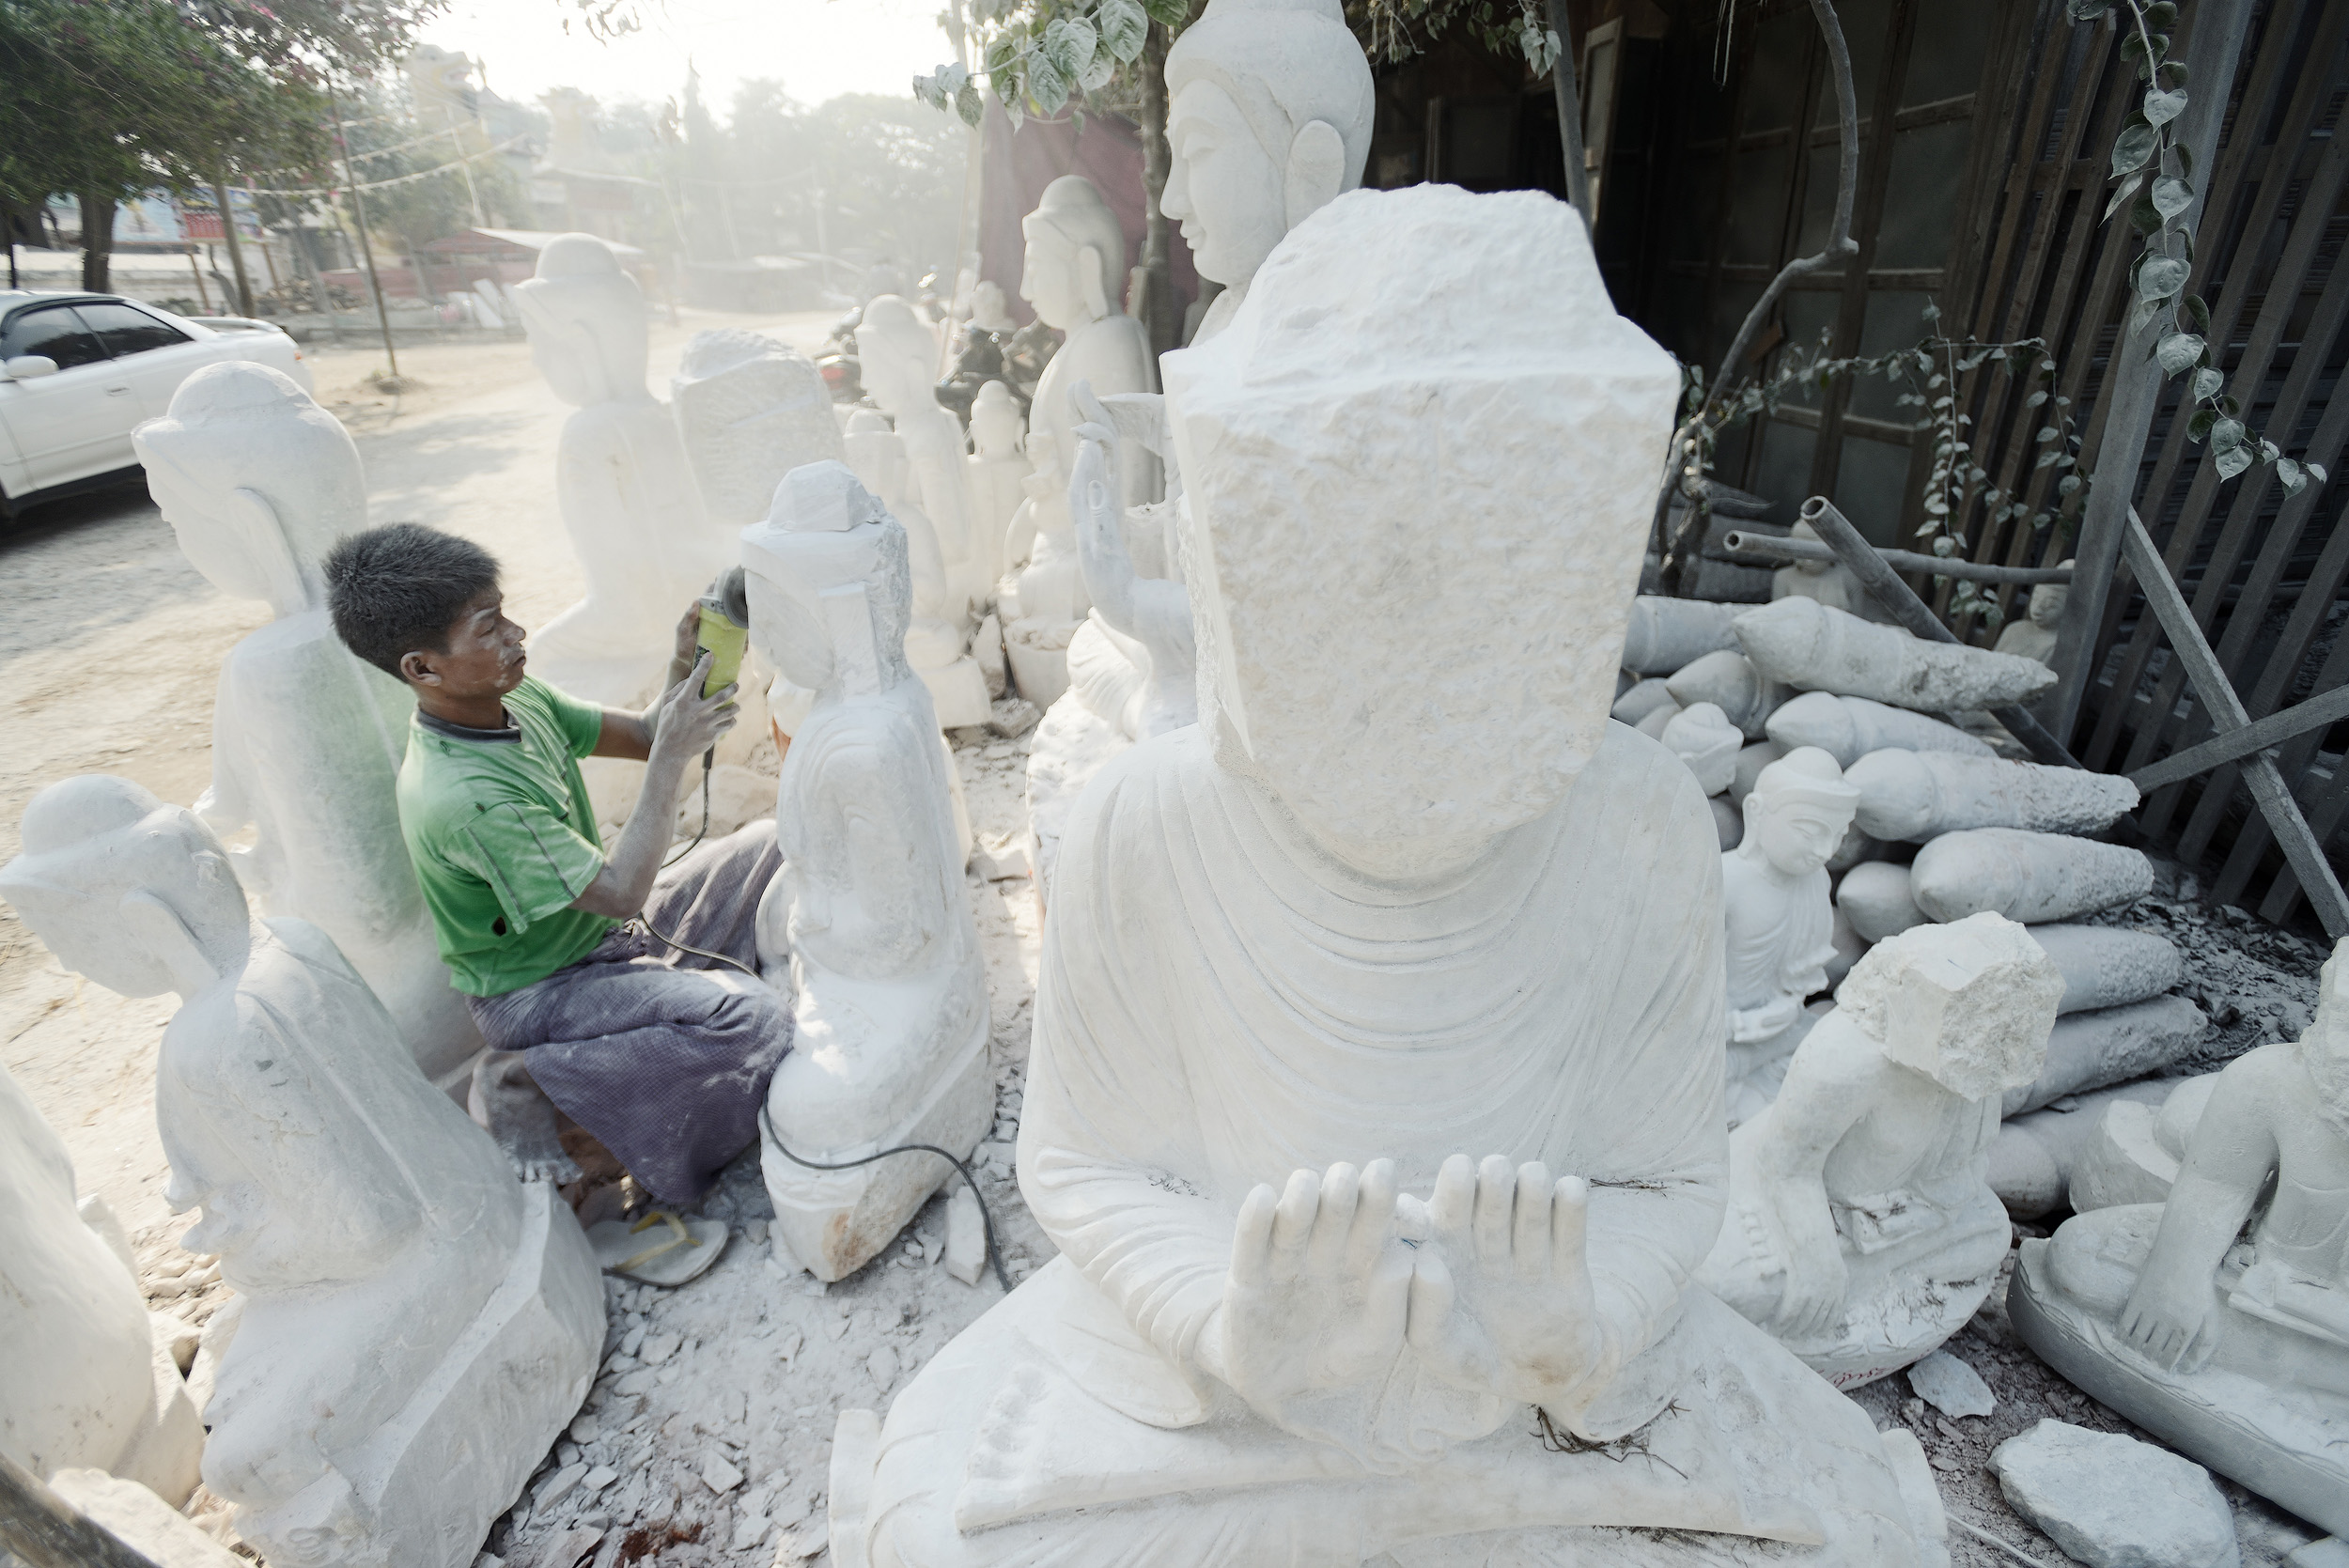 The Stone Carver II   Another image of the stone carver shaping lumps of stone into Buddhas on the streets of Amarapur